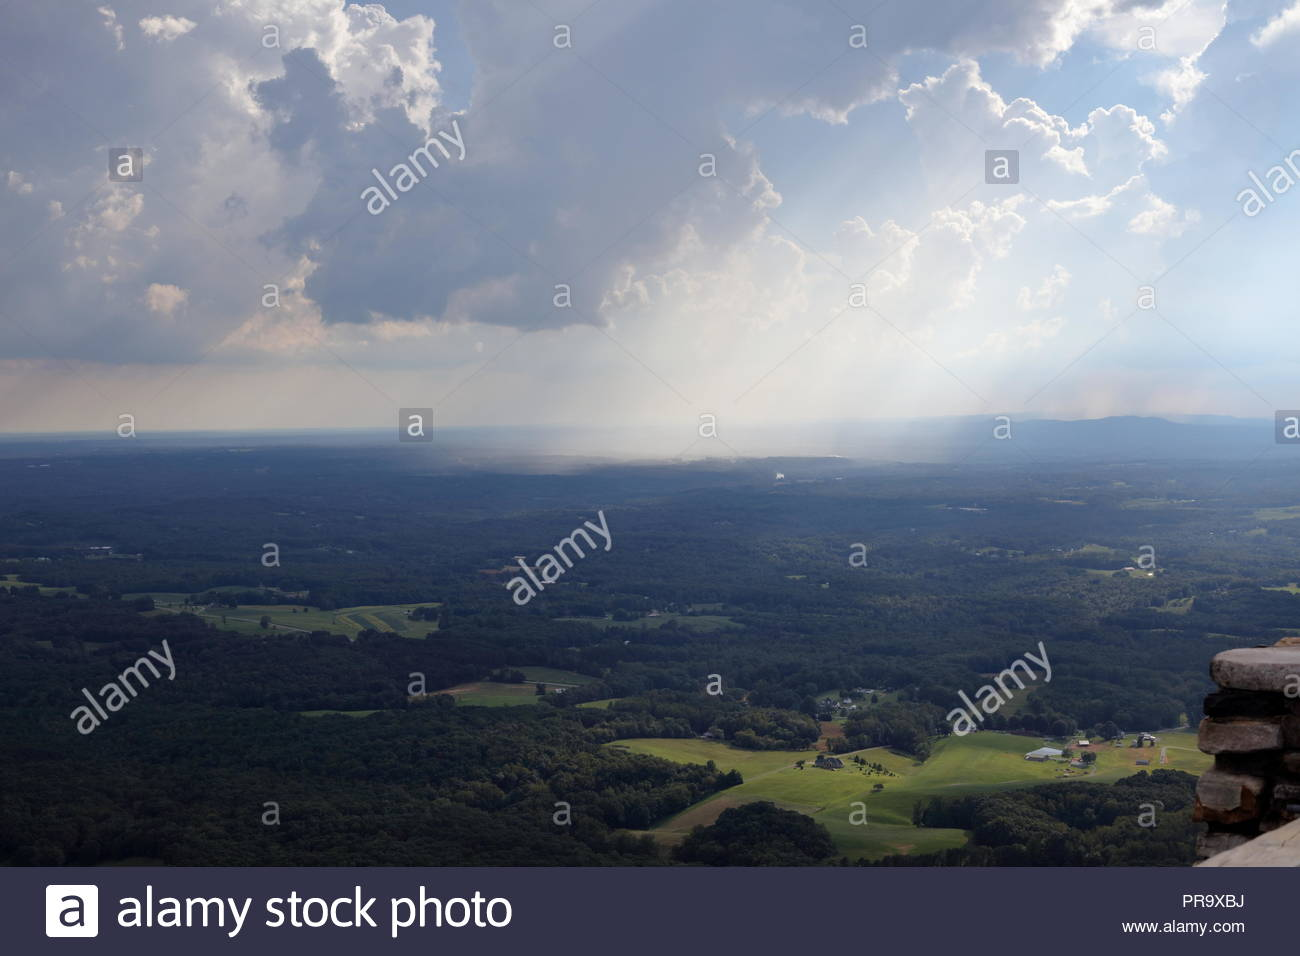 RAIN STORM AERIAL VIEW - Distant aerial view of rain falling on the land. Taken in North Carolina. - Stock Image